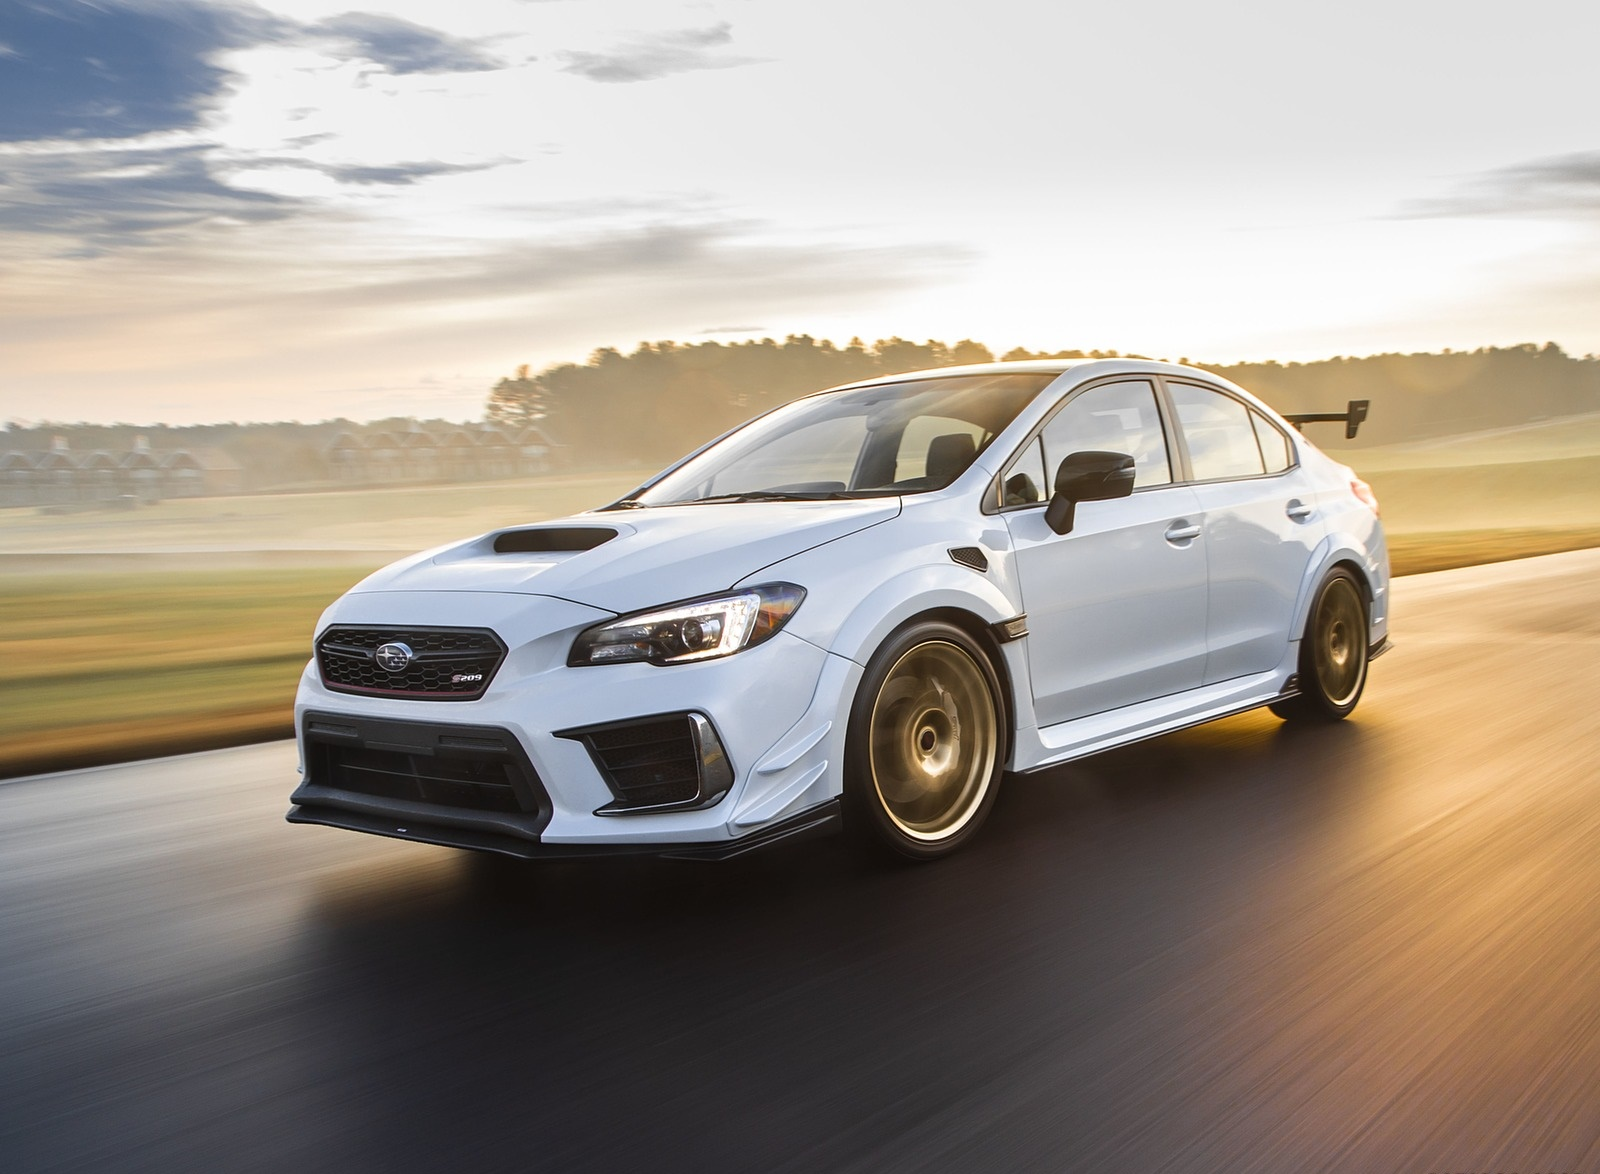 2019 Subaru WRX STI S209 Front Three-Quarter Wallpapers (4)